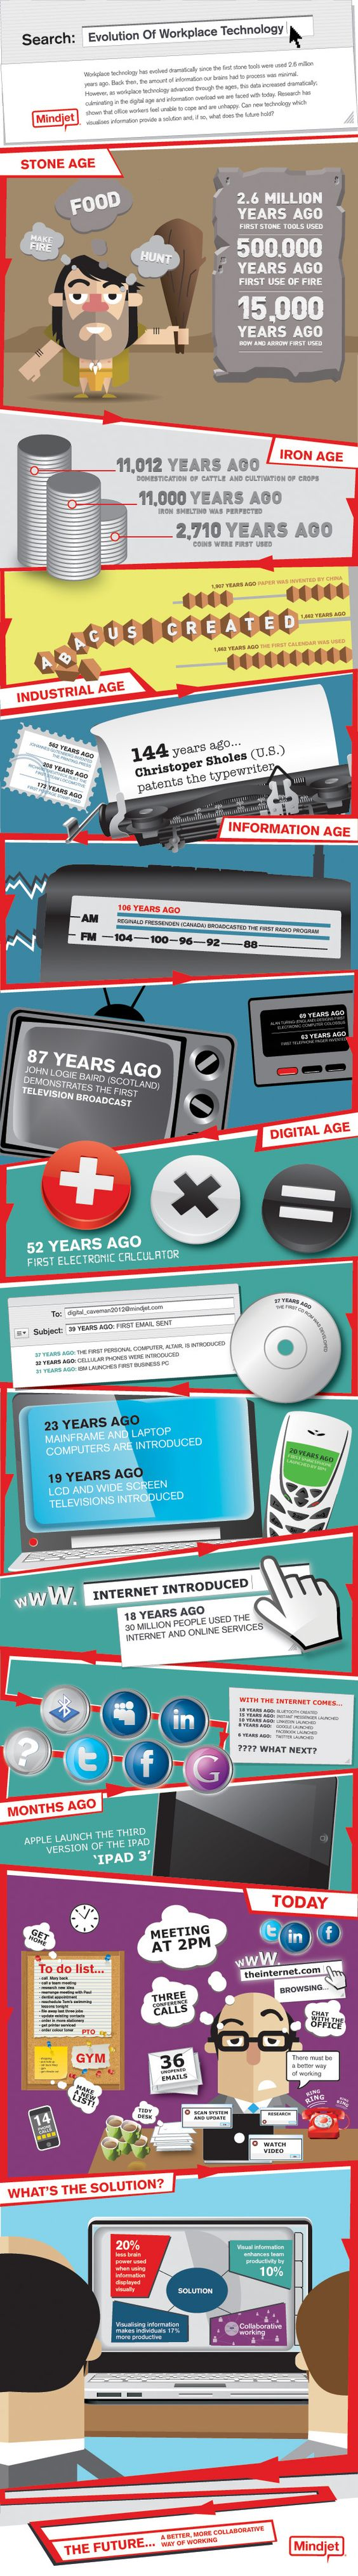 Evolution of Workplace Technology